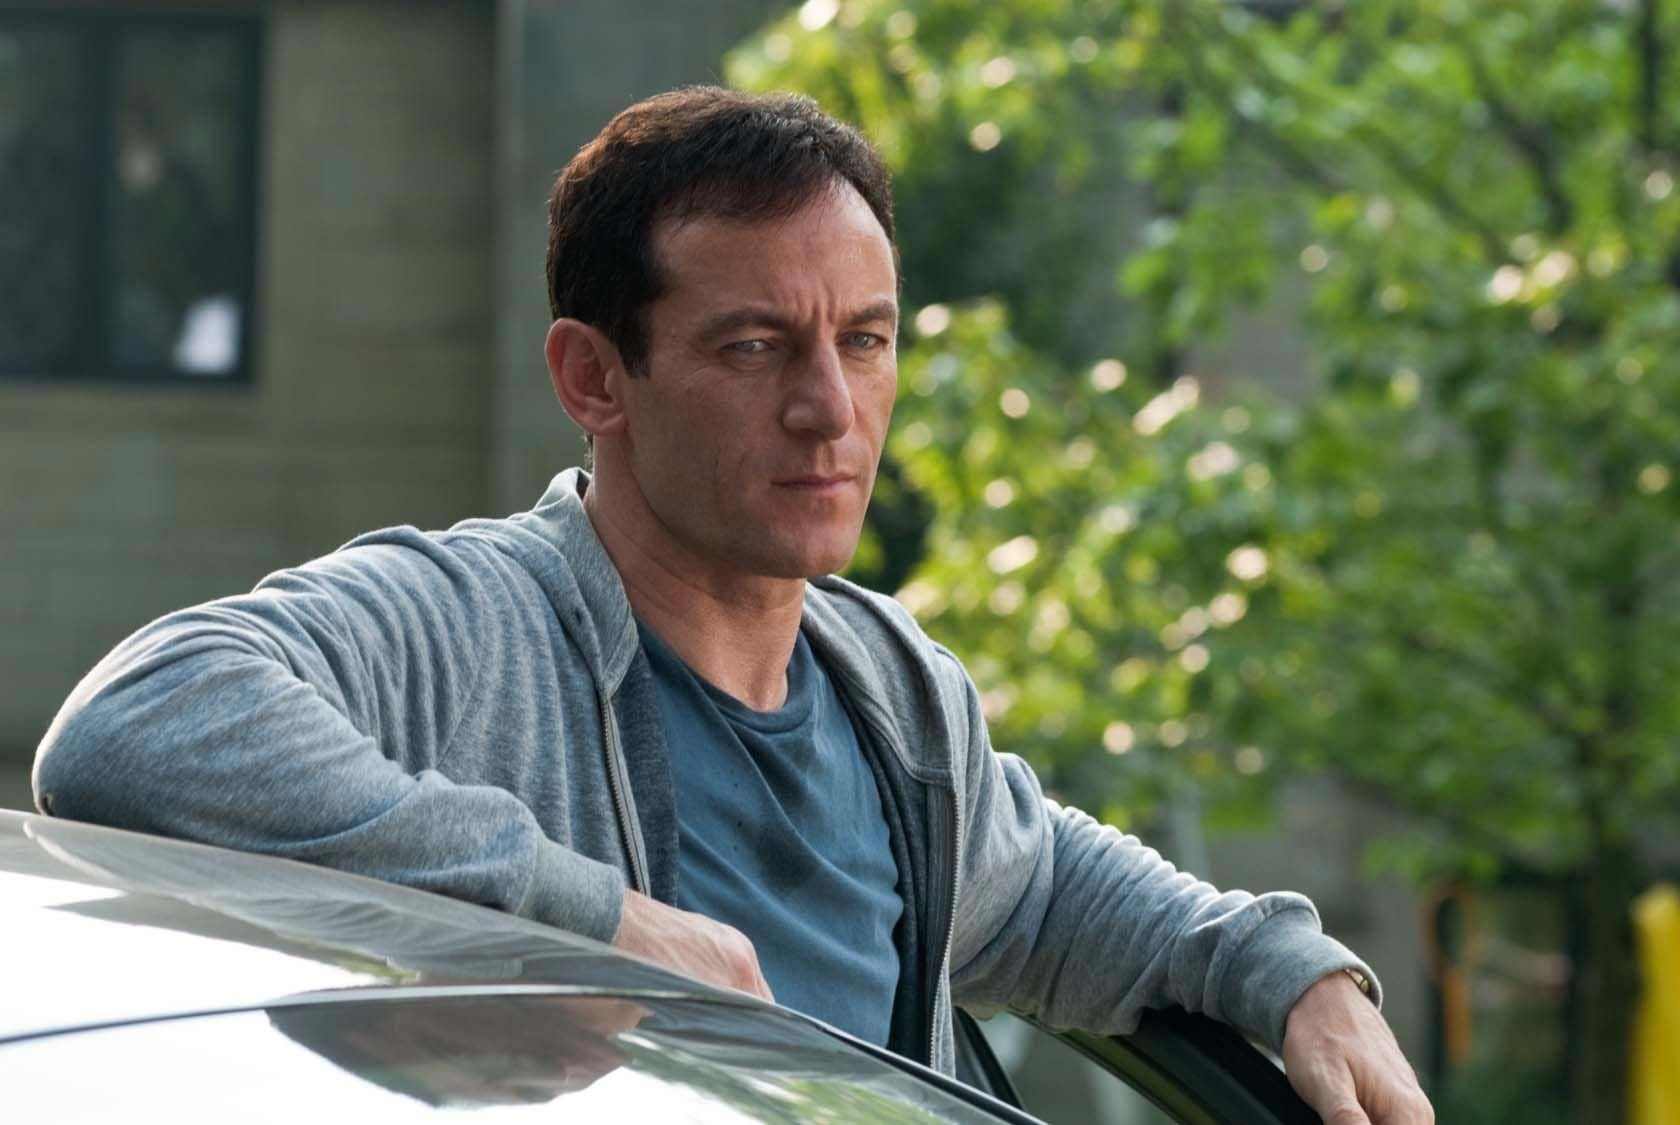 jason isaacs captain hookjason isaacs tom felton, jason isaacs young, jason isaacs gif, jason isaacs height, jason isaacs vk, jason isaacs captain hook, jason isaacs 2016, jason isaacs dig, jason isaacs family, jason isaacs stalin, jason isaacs lucius malfoy, jason isaacs star trek, jason isaacs twitter, jason isaacs imdb, jason isaacs photoshoot, jason isaacs audiobook, jason isaacs in harry potter, jason isaacs wiki, jason isaacs football, jason isaacs daughters